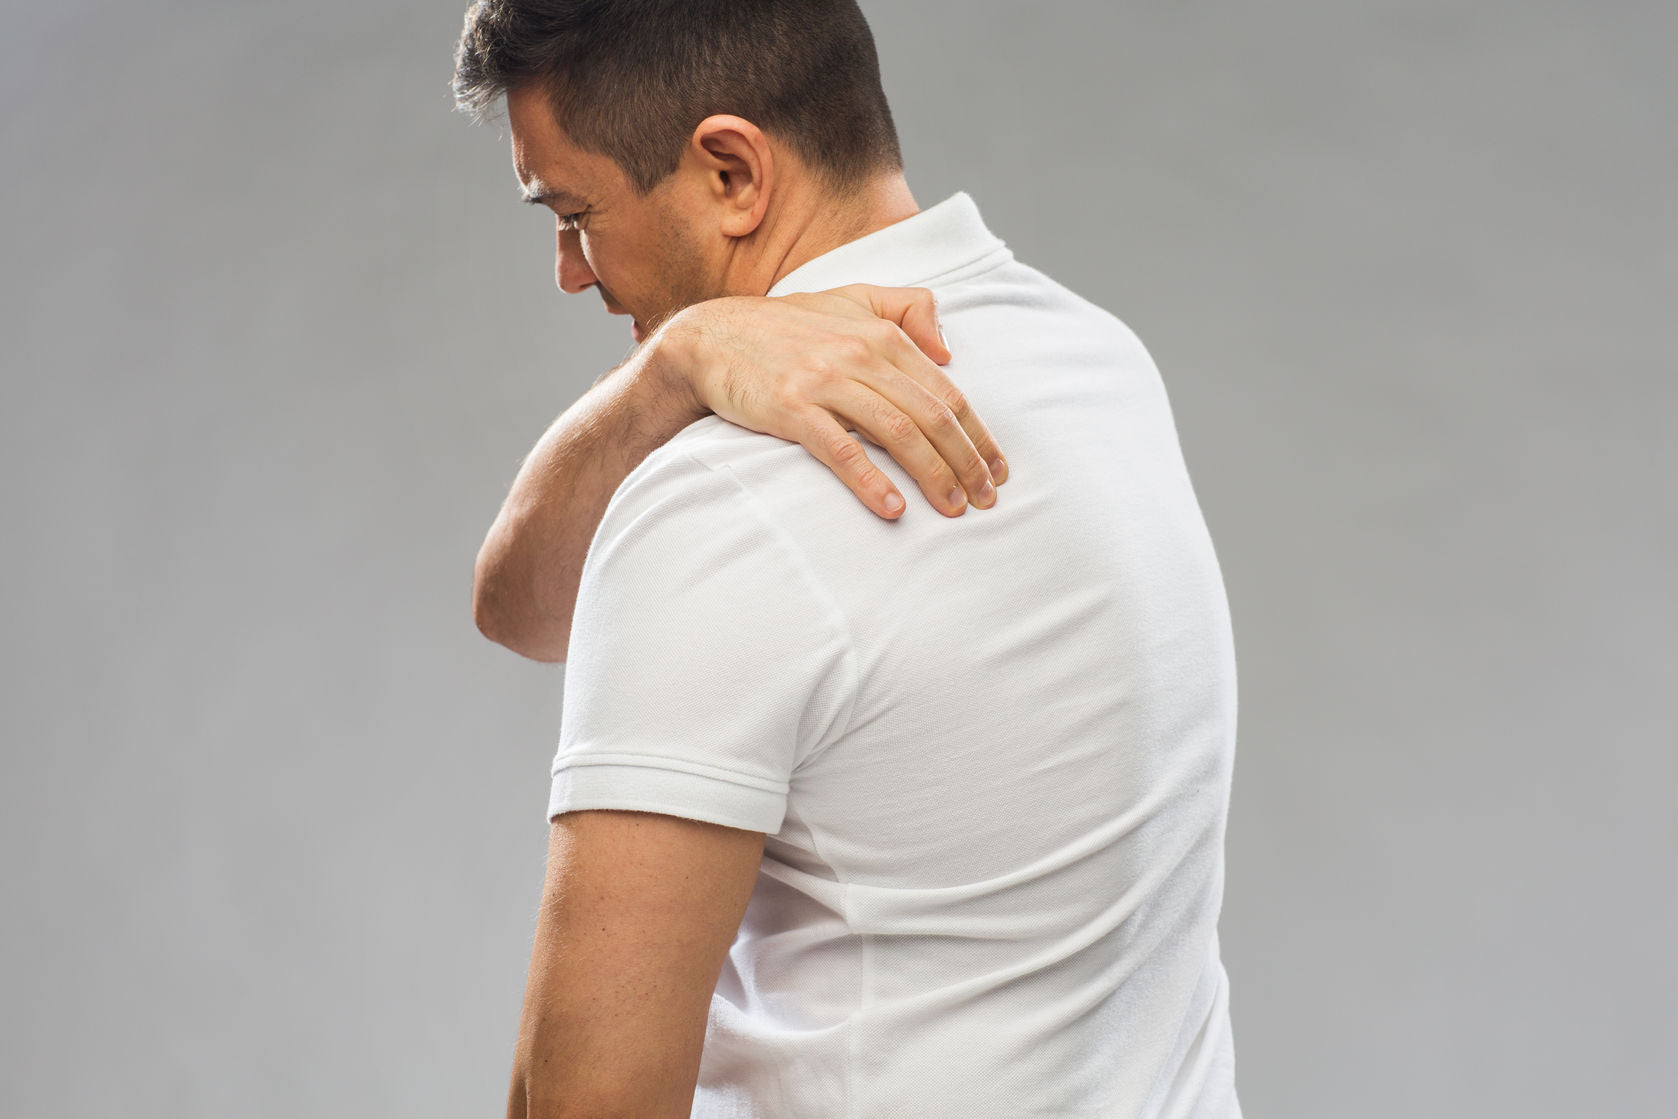 Top Ways to Relieve Sore Muscles and Back Pain